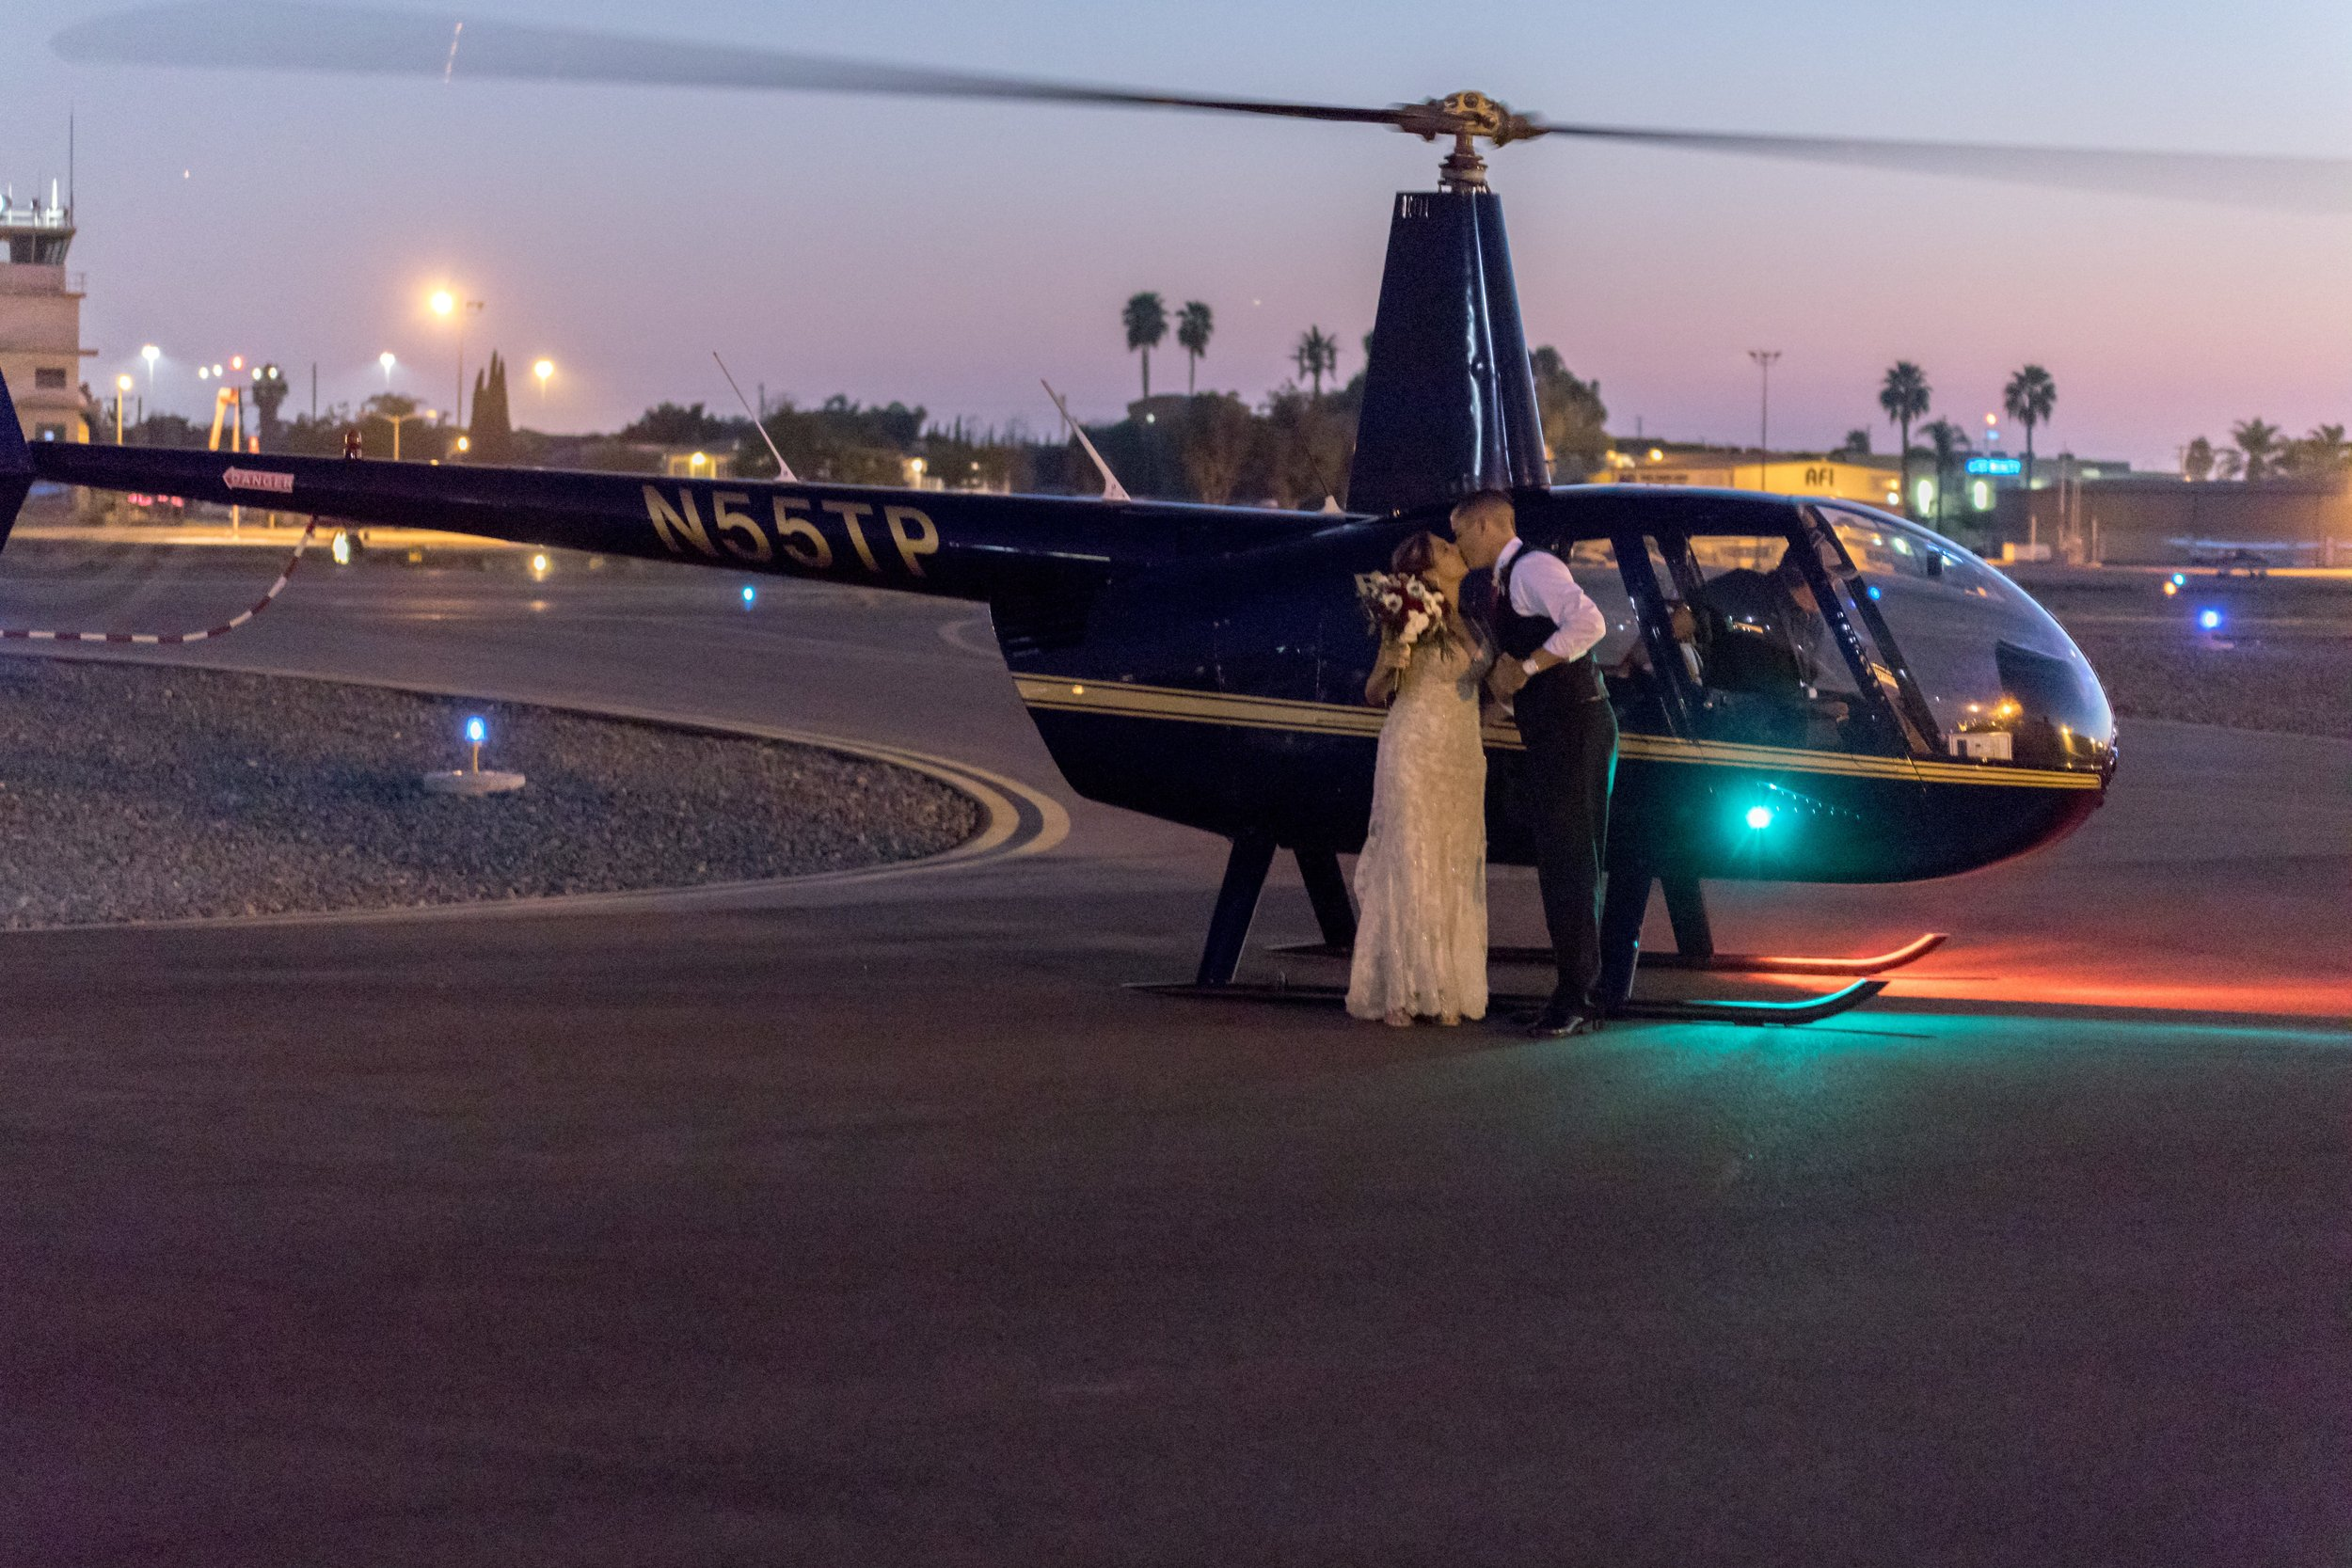 A bride and groom depart by helicopter for their aviation wedding themed grand exit.